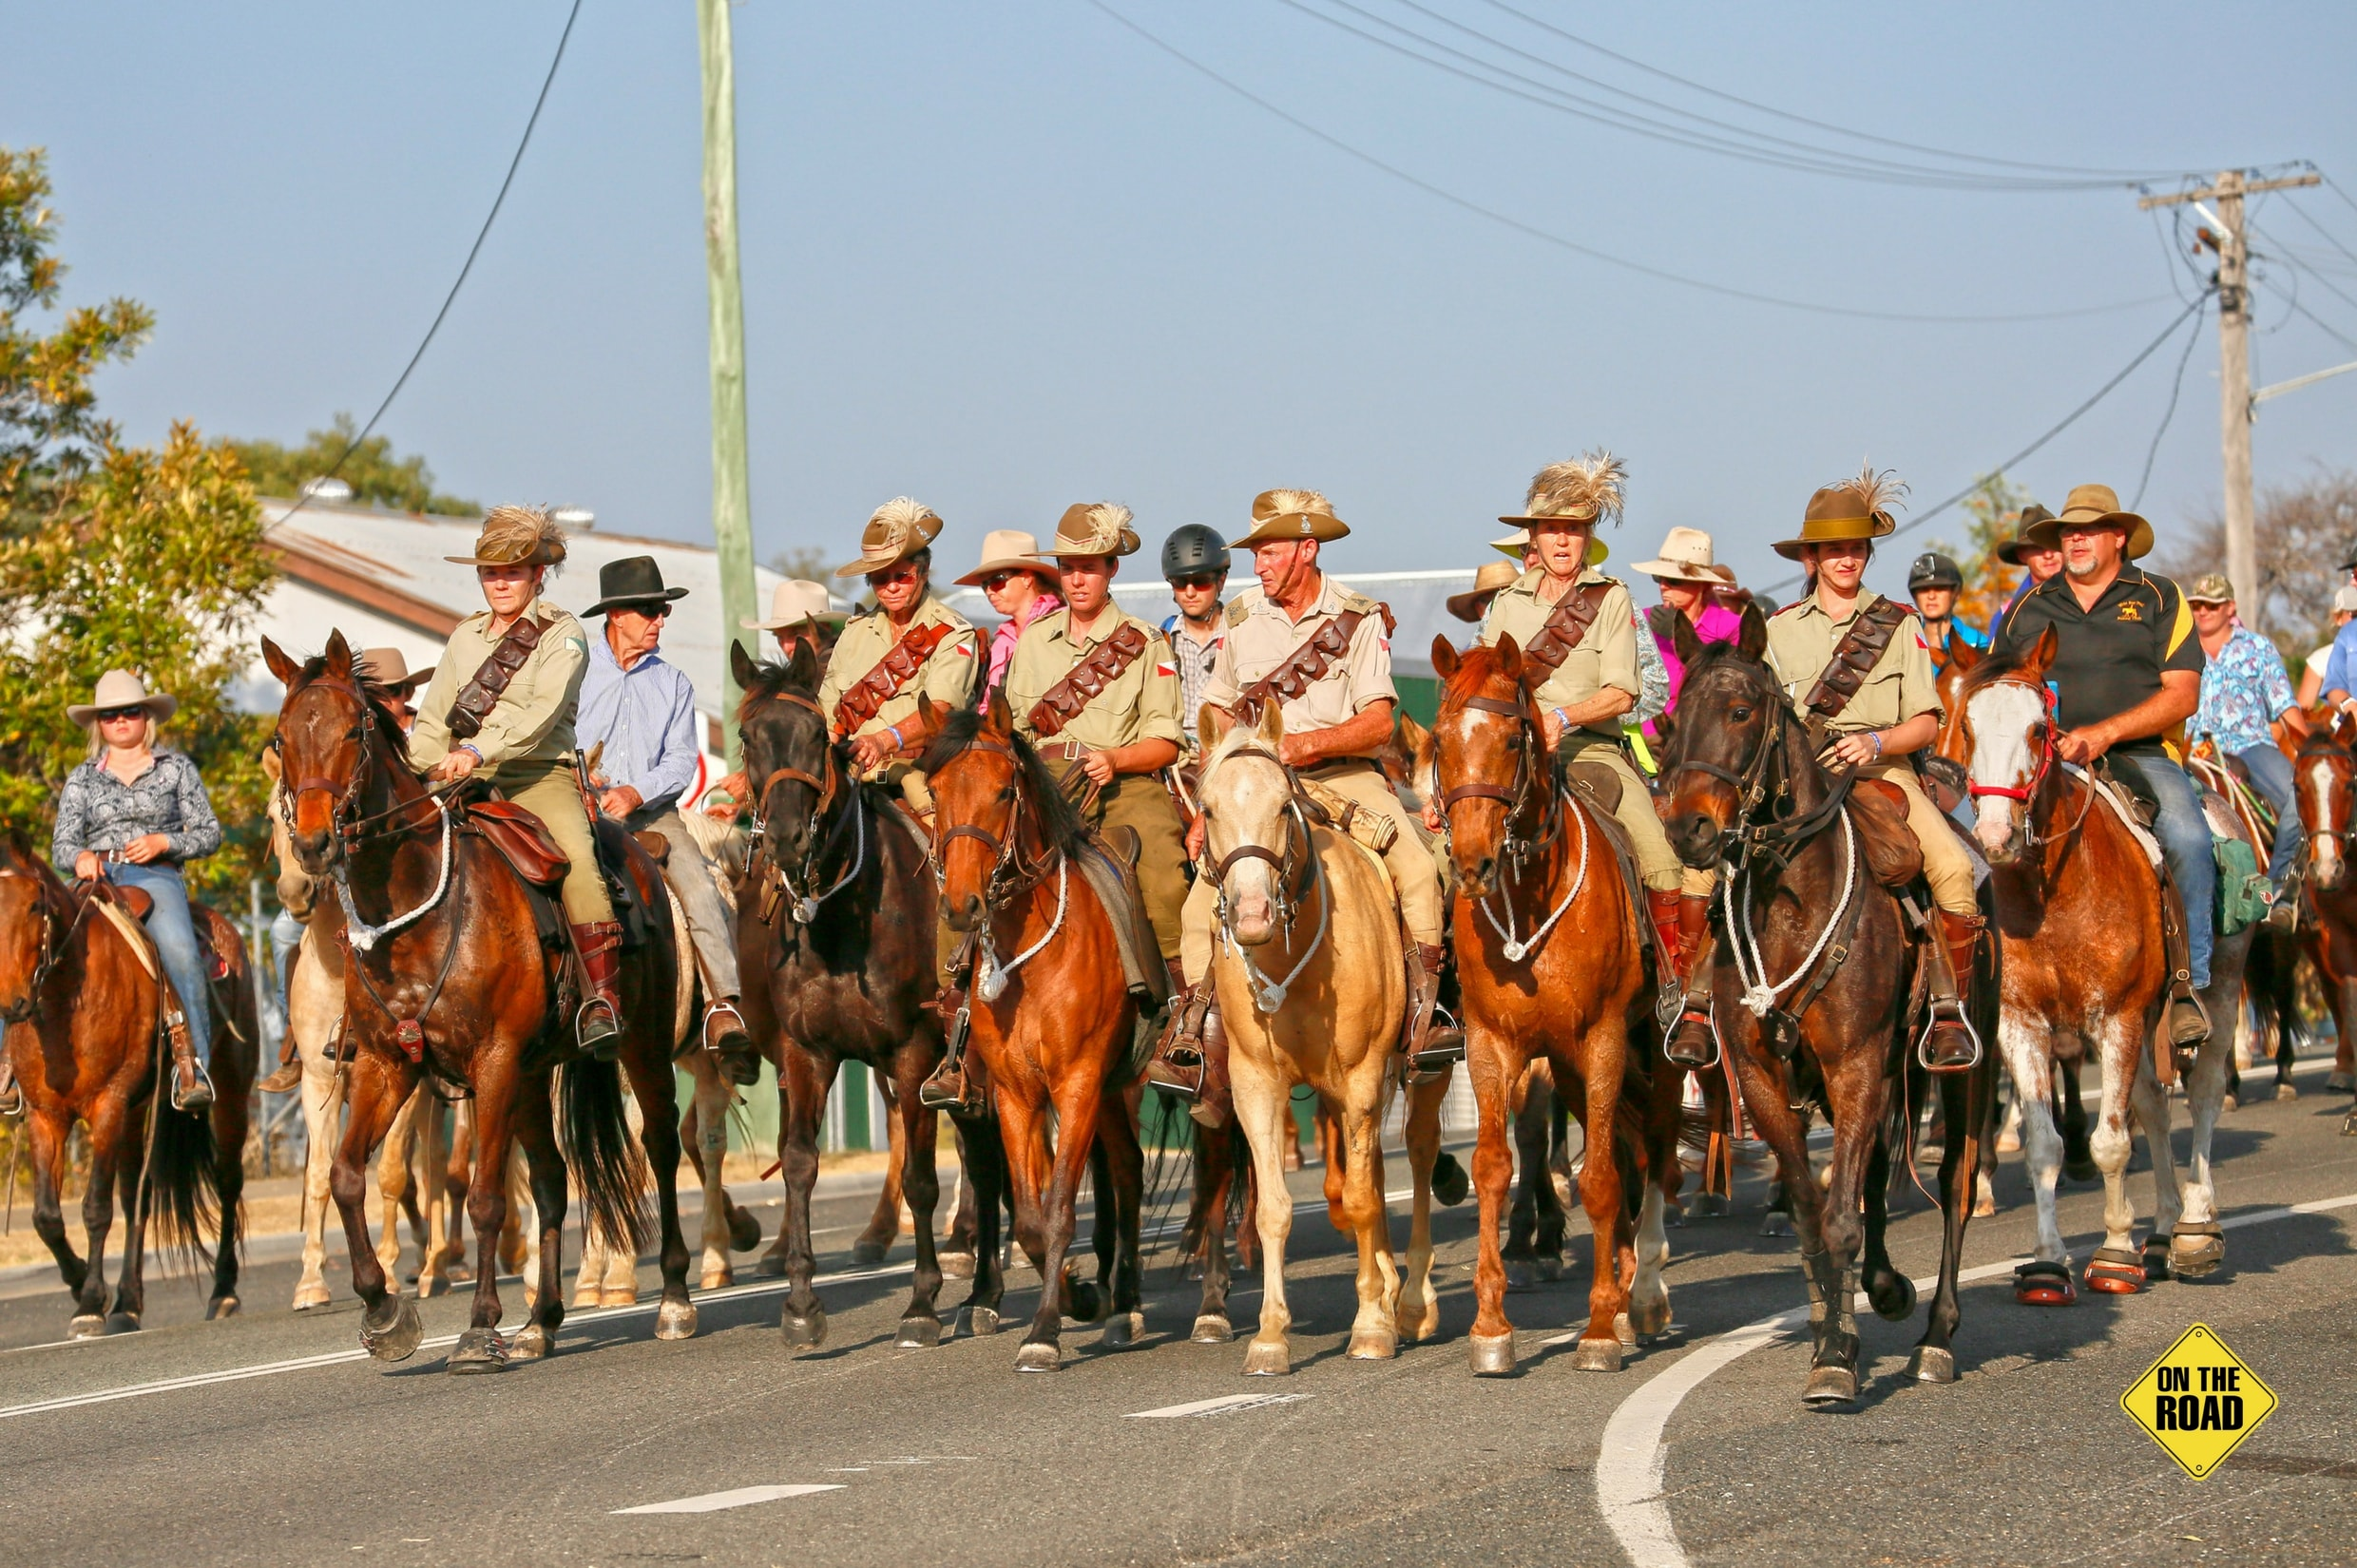 The local Light Horse contingent leads the Grand Parade of Horses down the main street